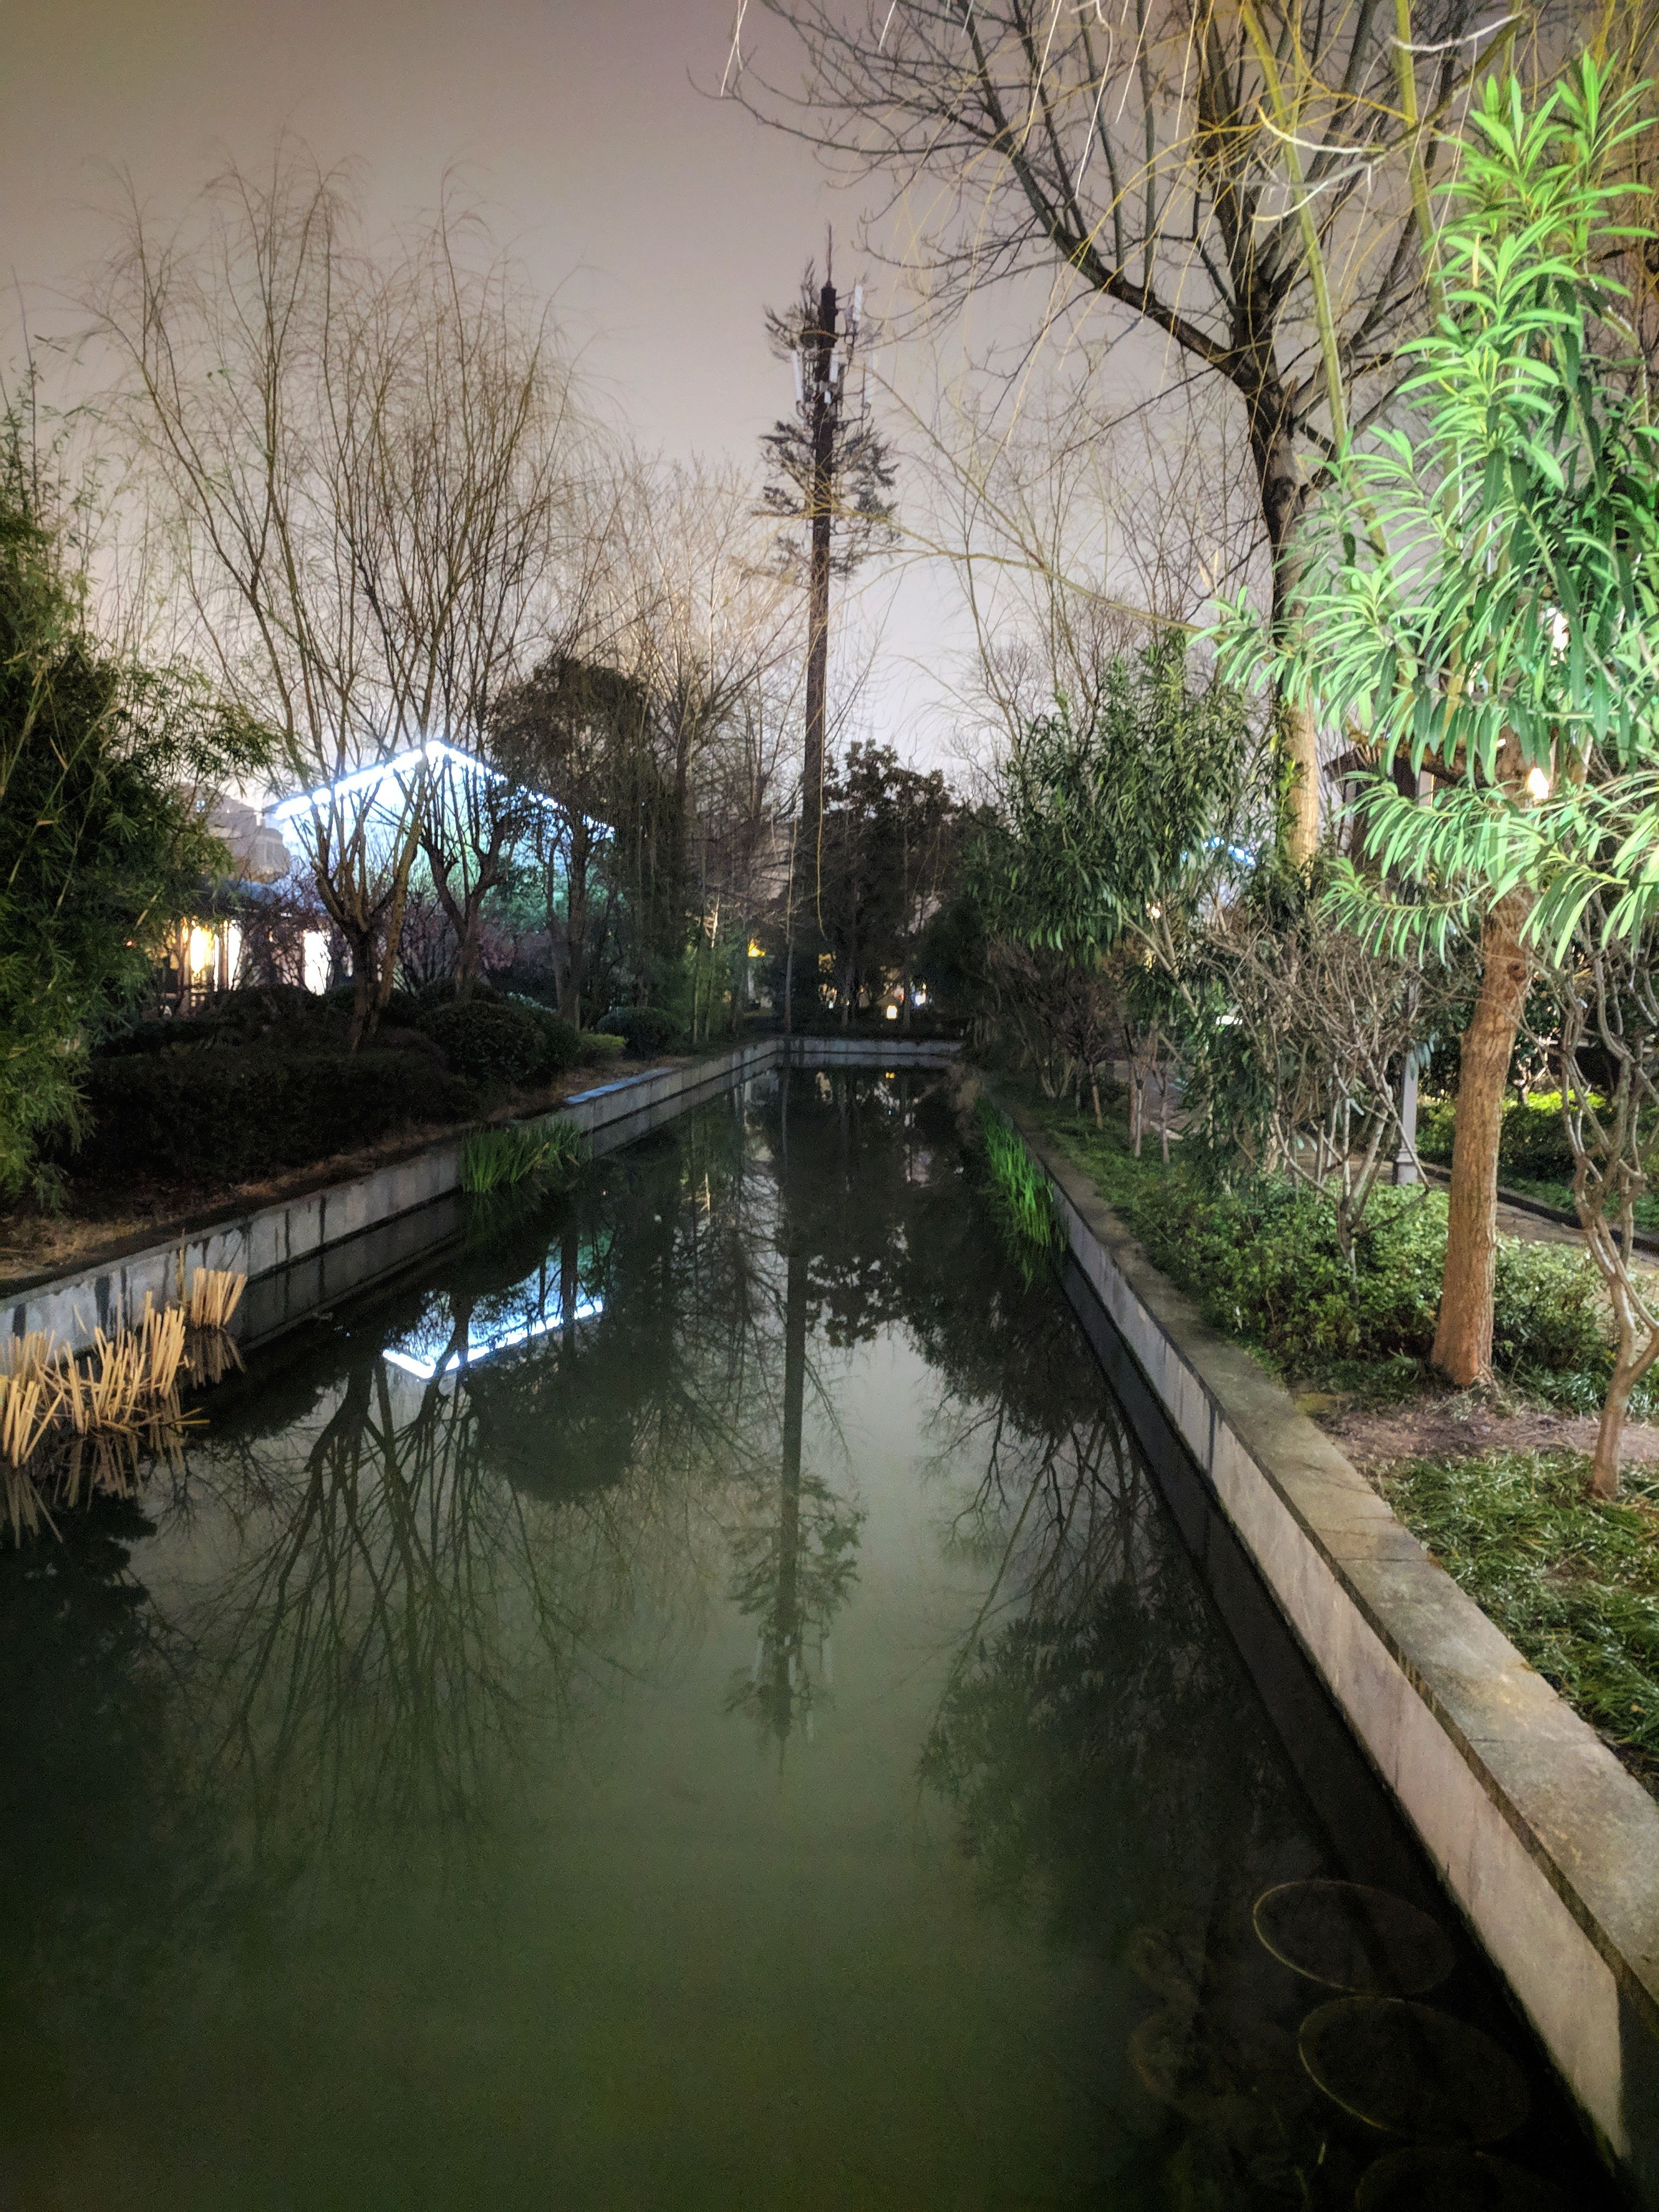 Sick of the Crowded Suzhou Old Town Gardens? Come to Xie